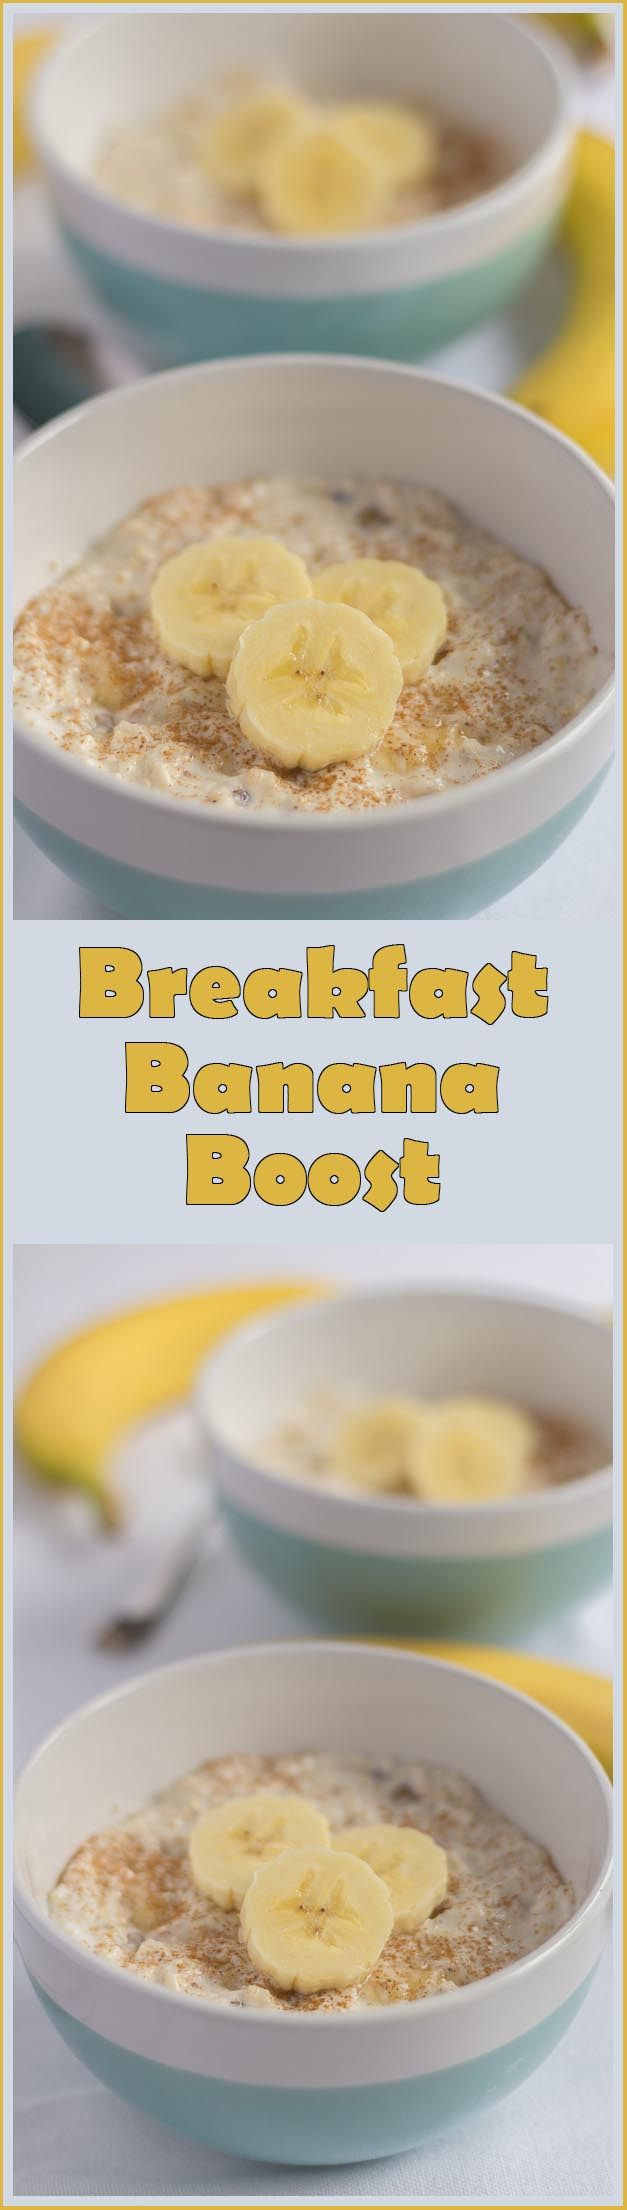 Tasty banana vanilla overnight oats recipe. Save time with your breakfast by making it the night before! This really will give you a great energy BOOST at the start of your day!